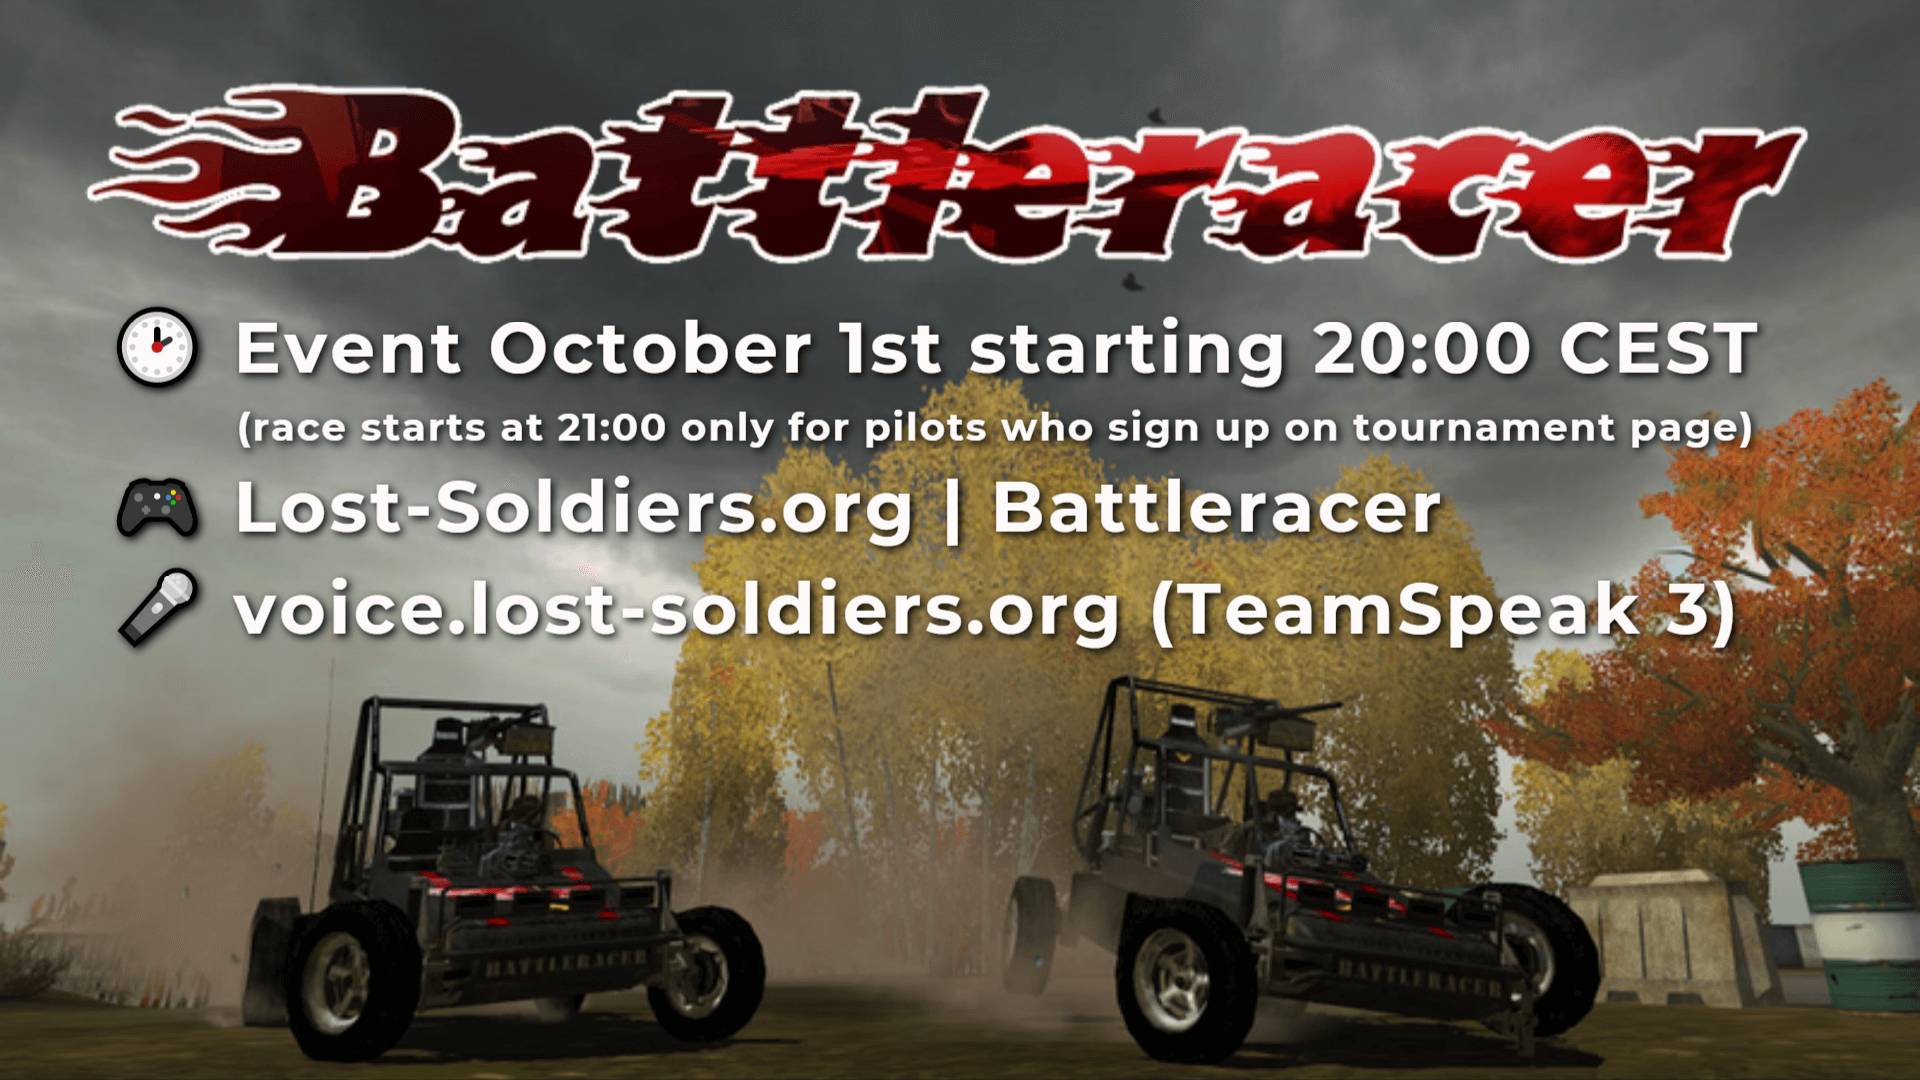 https://www.lost-soldiers.org/images/news-pics/Battleracer-Event-2020-min.png